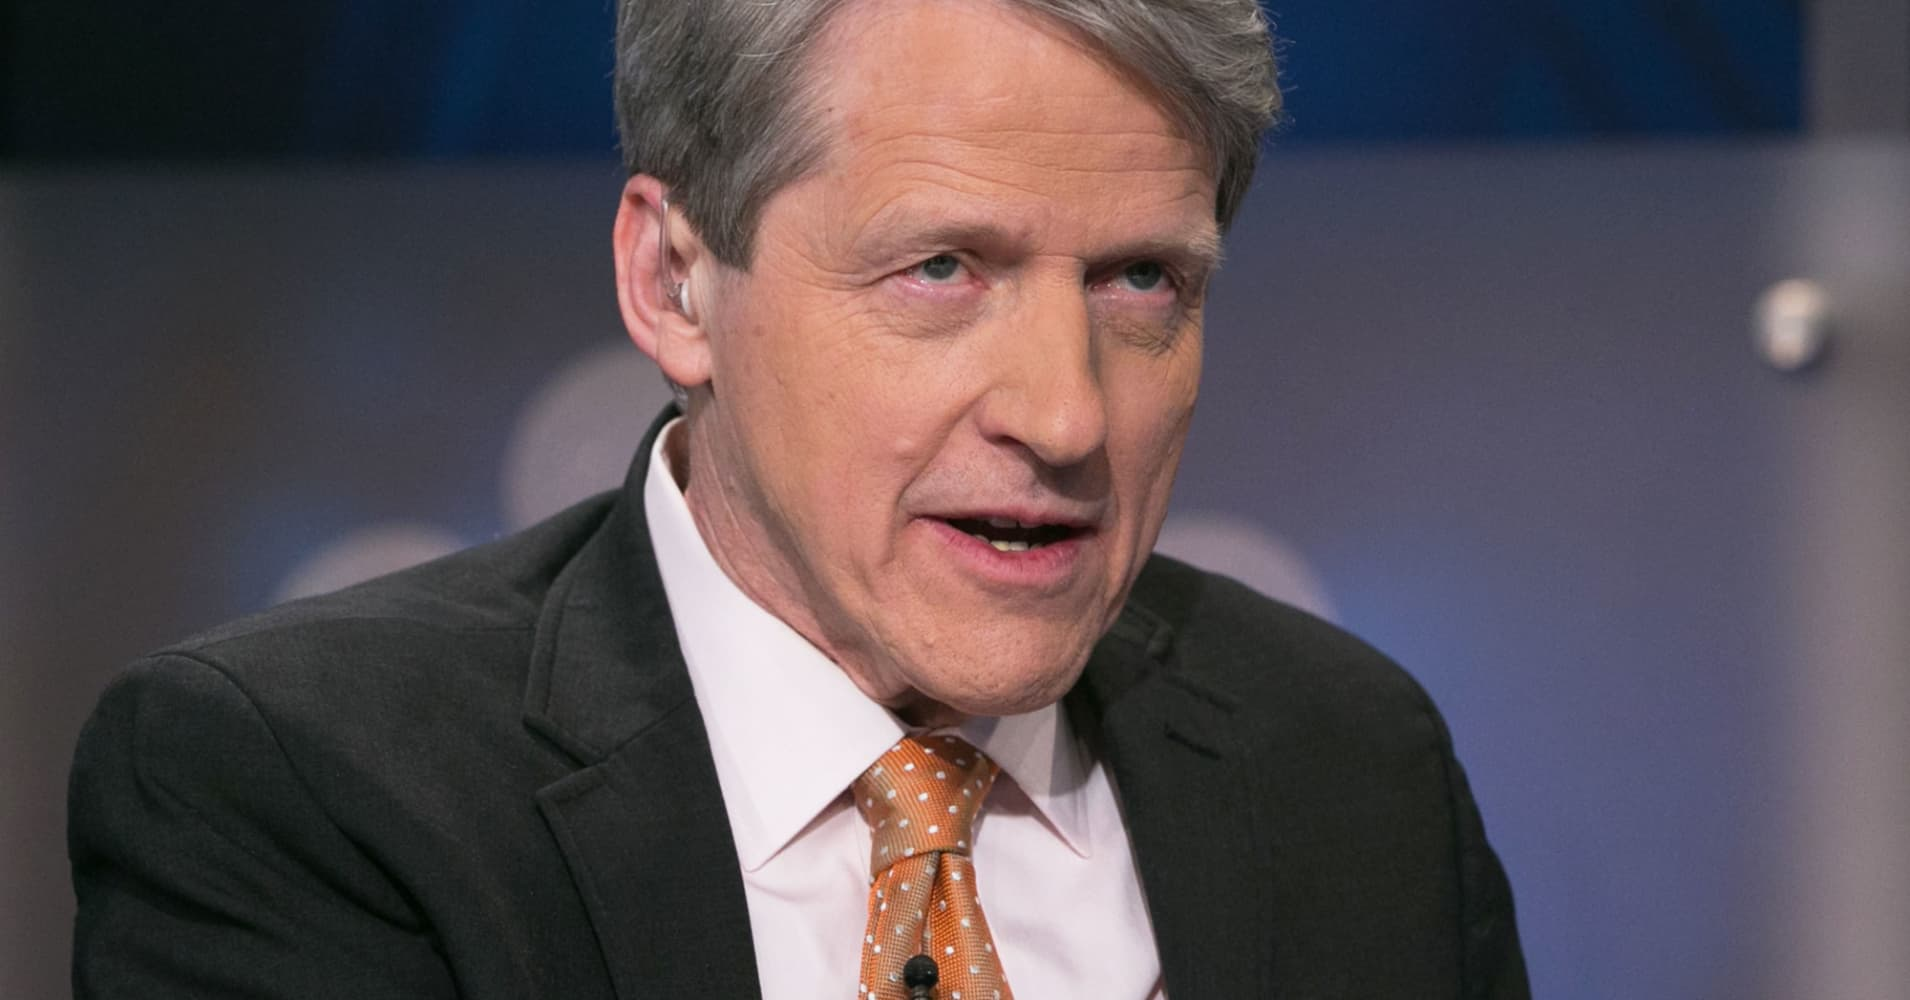 Robert Shiller: Tax bill's mortgage interest deduction cut won't affect home prices